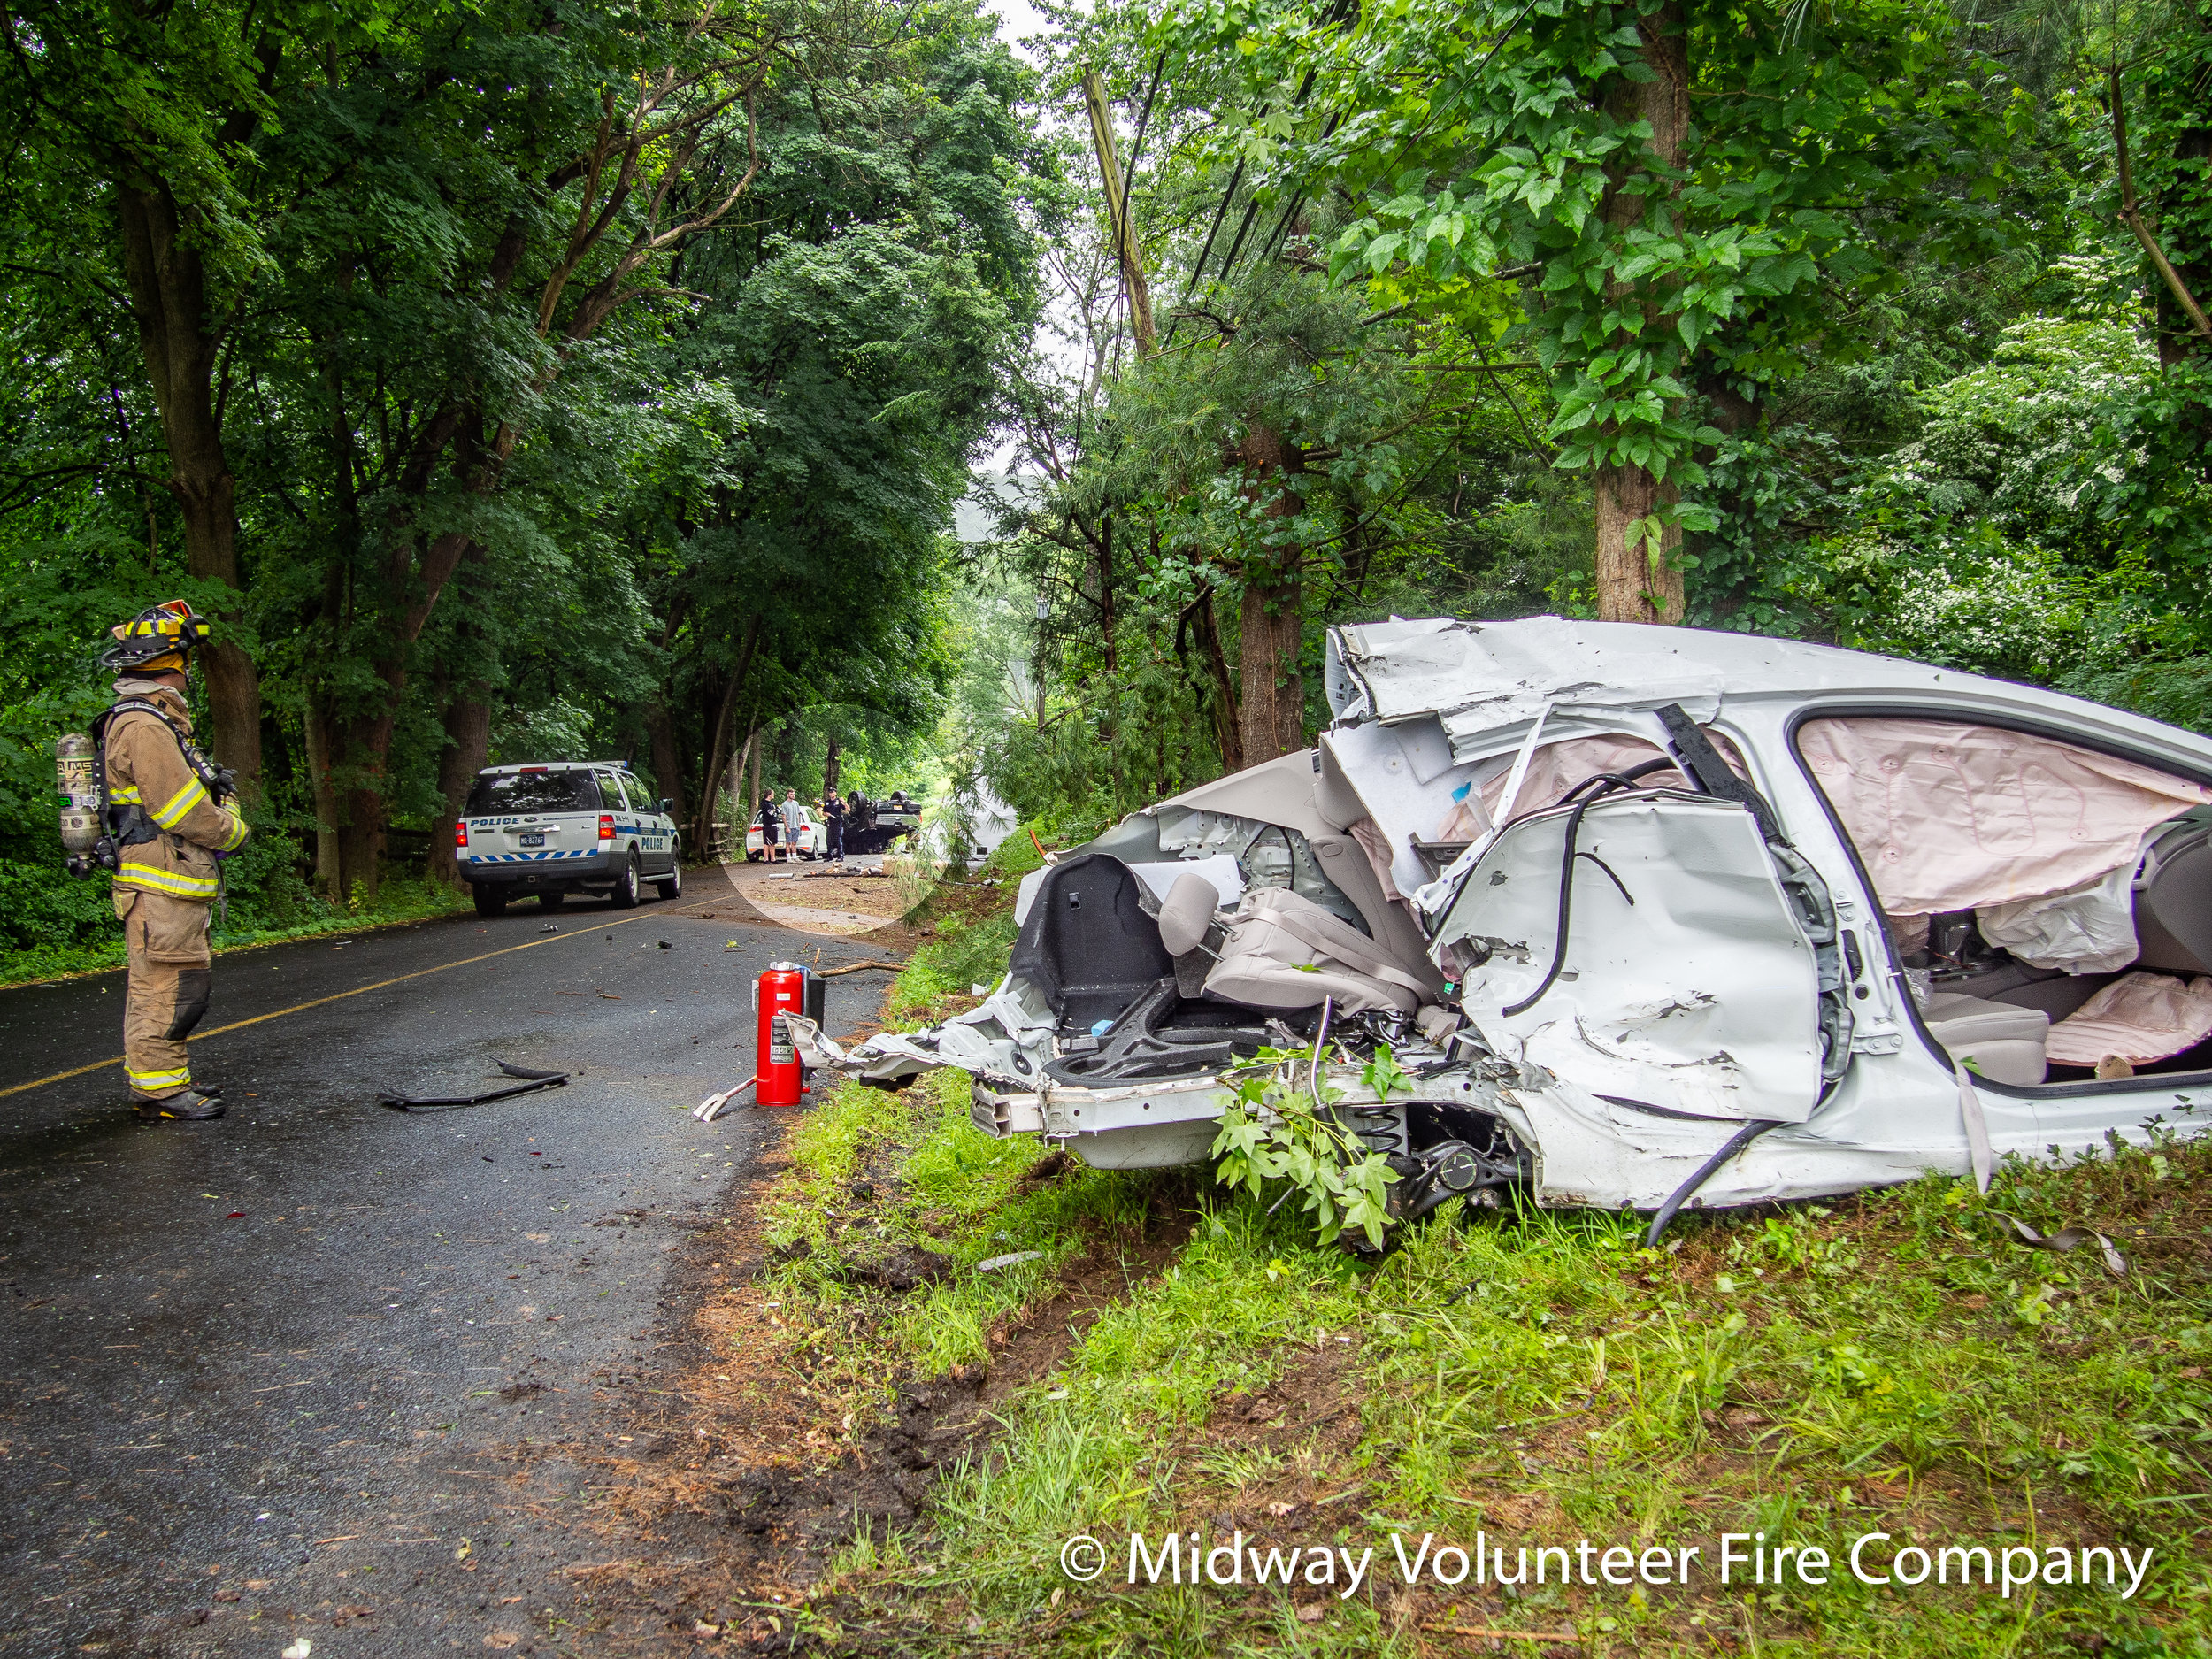 2019.06.10 - Rescue 5 and Engine 15 respond to a two vehicle accident on Holicong Road at Upper Mountain road. Three people transported to area hospitals after being extracted. The accident involved the white vehicle in the foreground and the overturned truck in the highlight circle. The other white car was not involved.